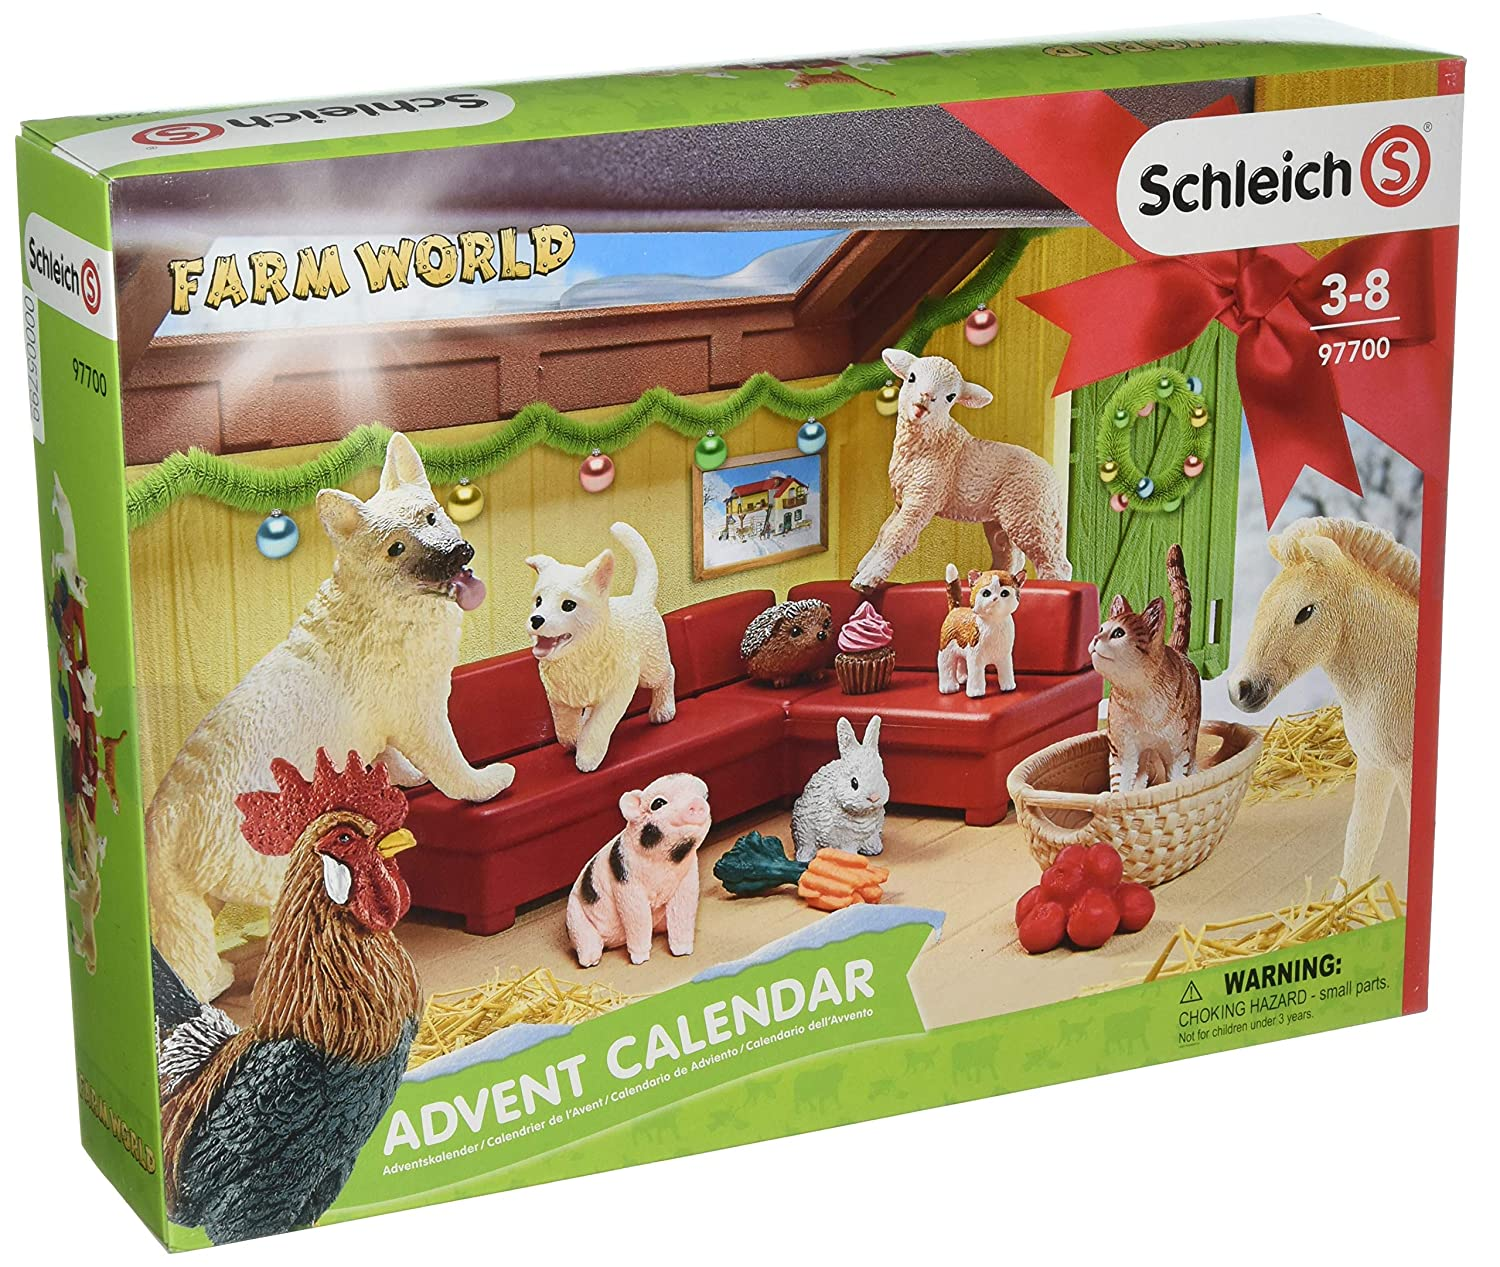 Schleich 97700 - Farm World Advent Calendar 2018